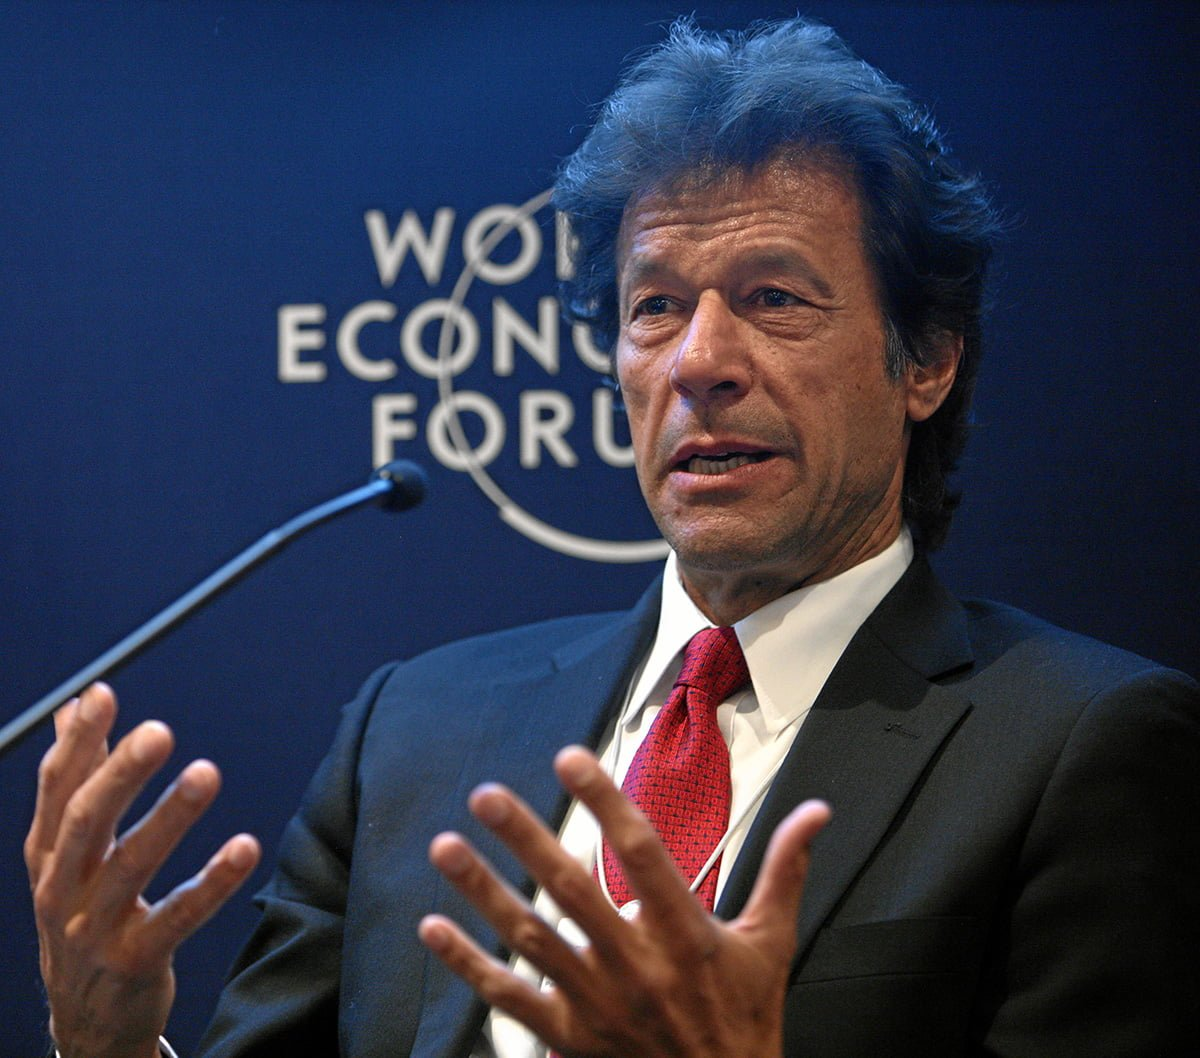 imran khan new york times article